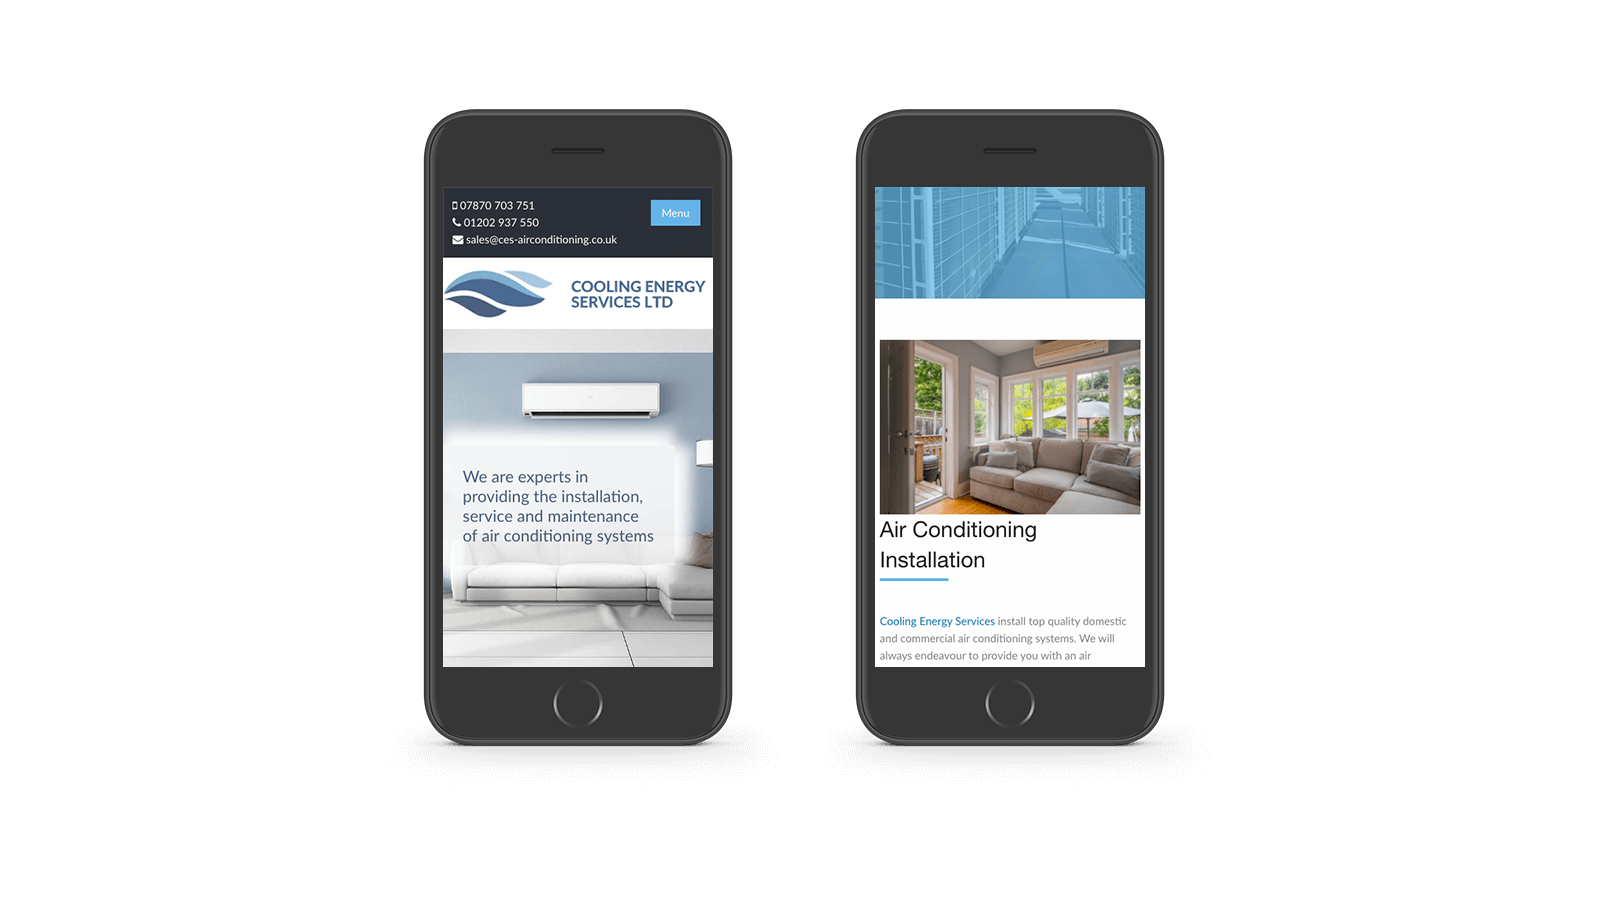 Cooling Energy Services responsive design mobile